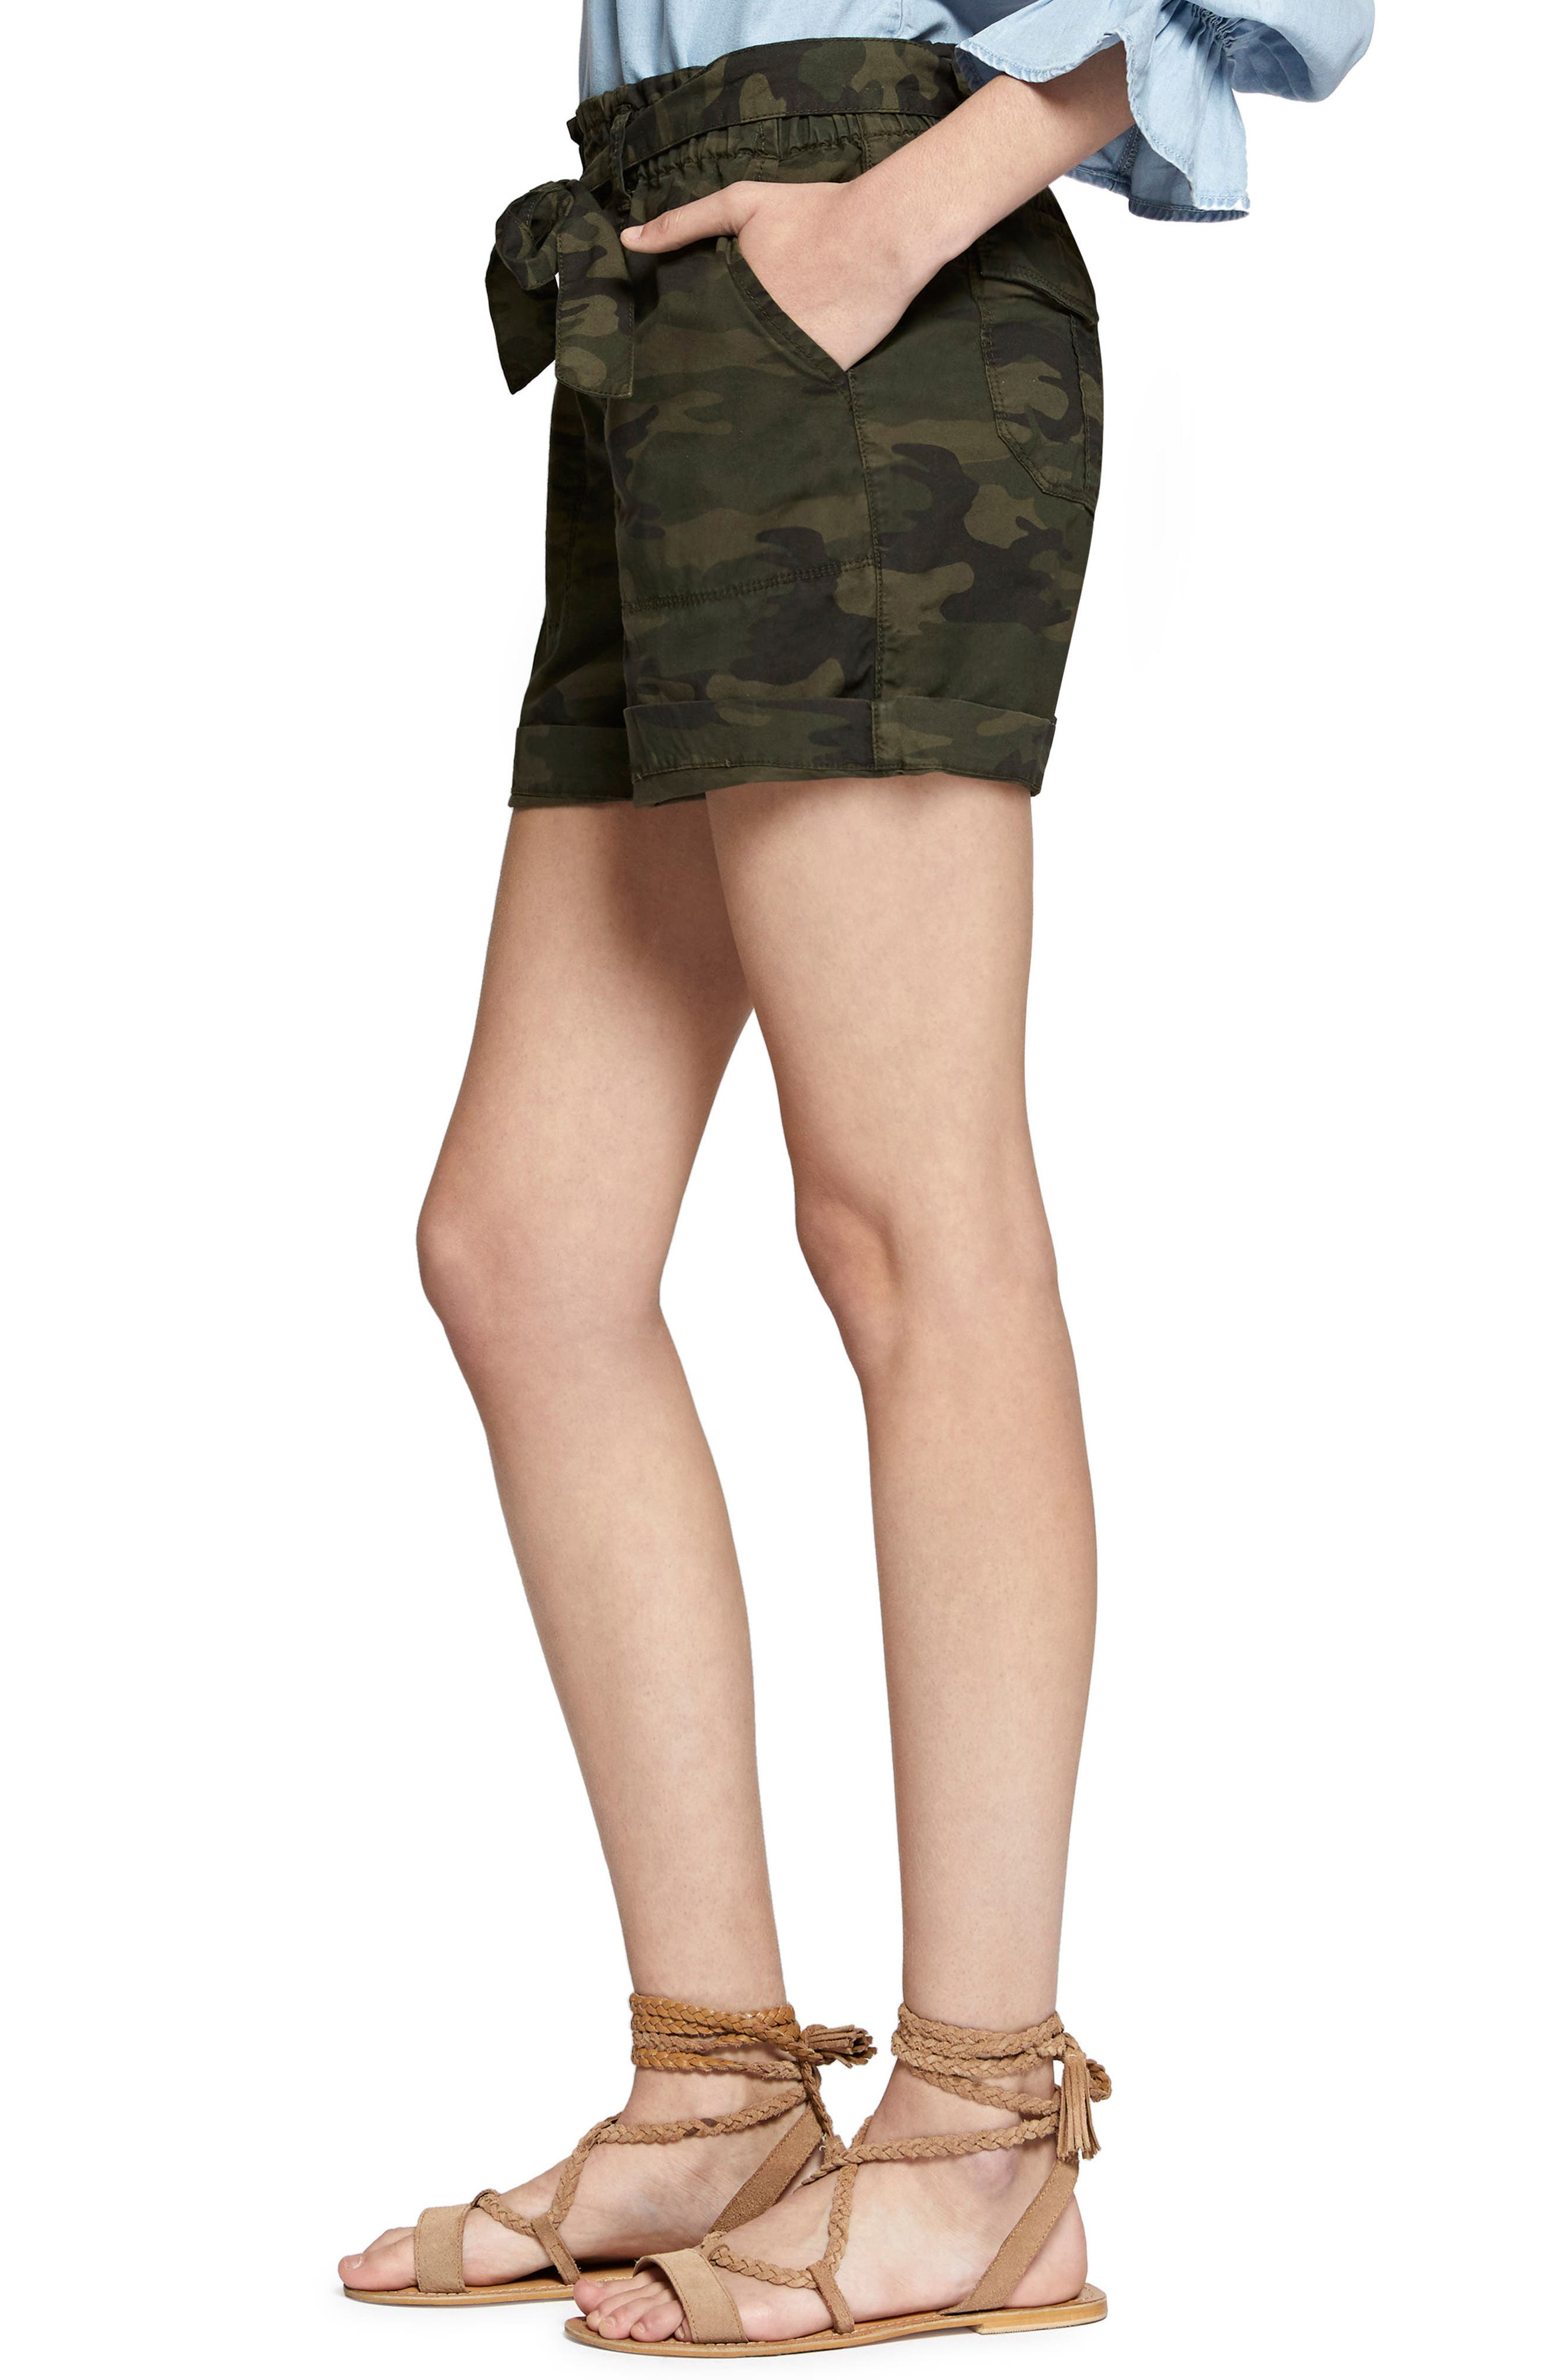 Daydreamer Stretch Cotton Camo Shorts,                             Alternate thumbnail 3, color,                             398